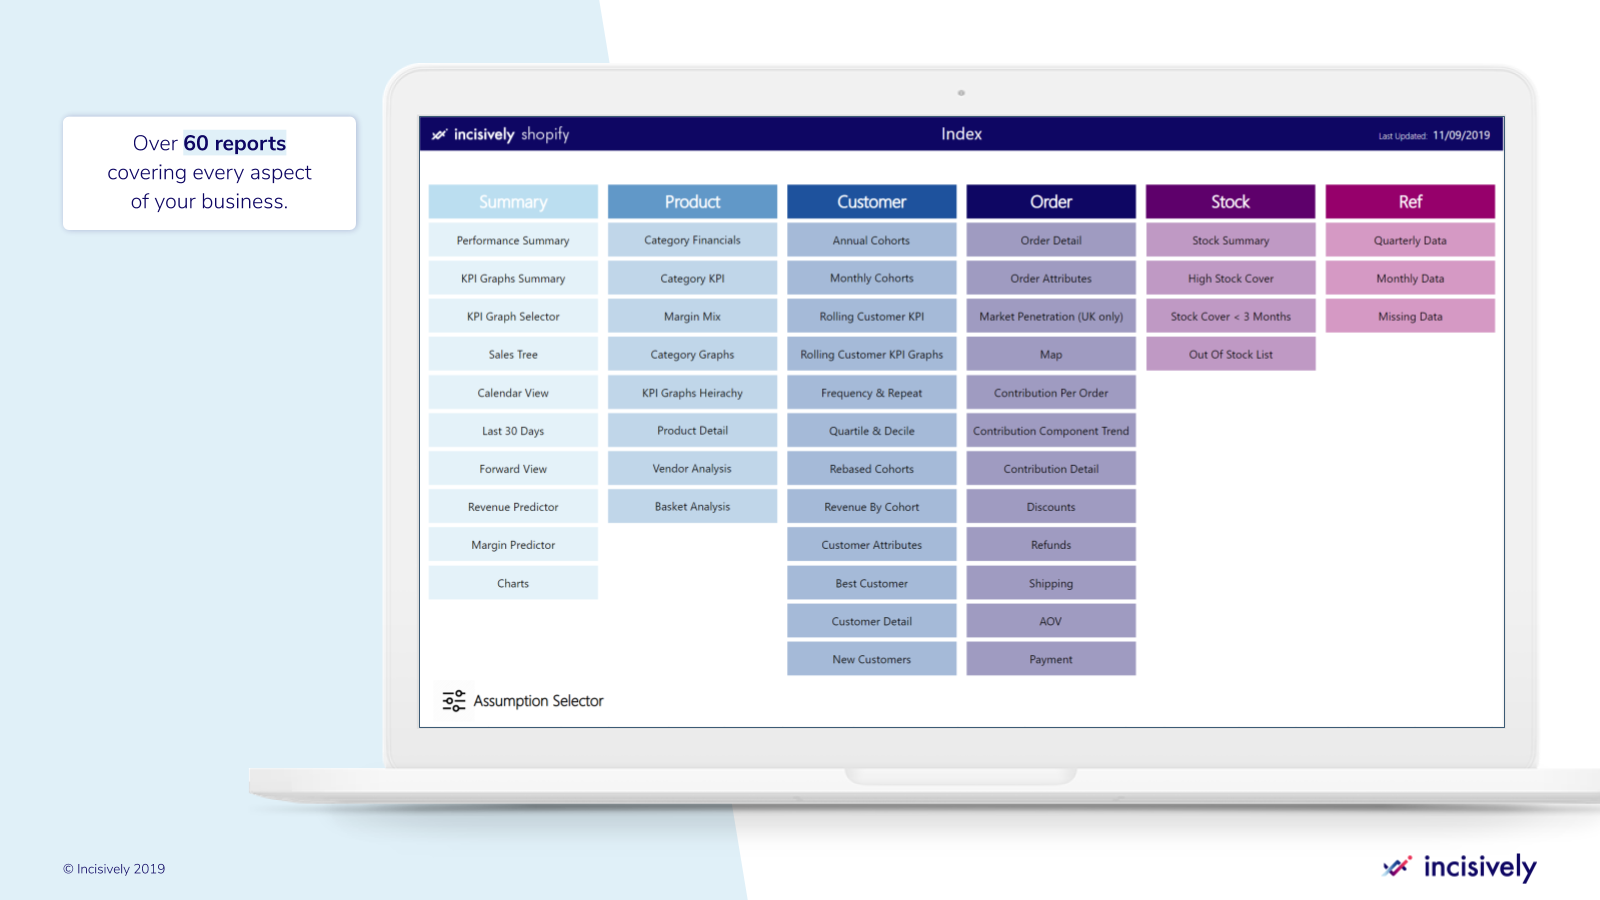 Over 60 reports covering every aspect of your business